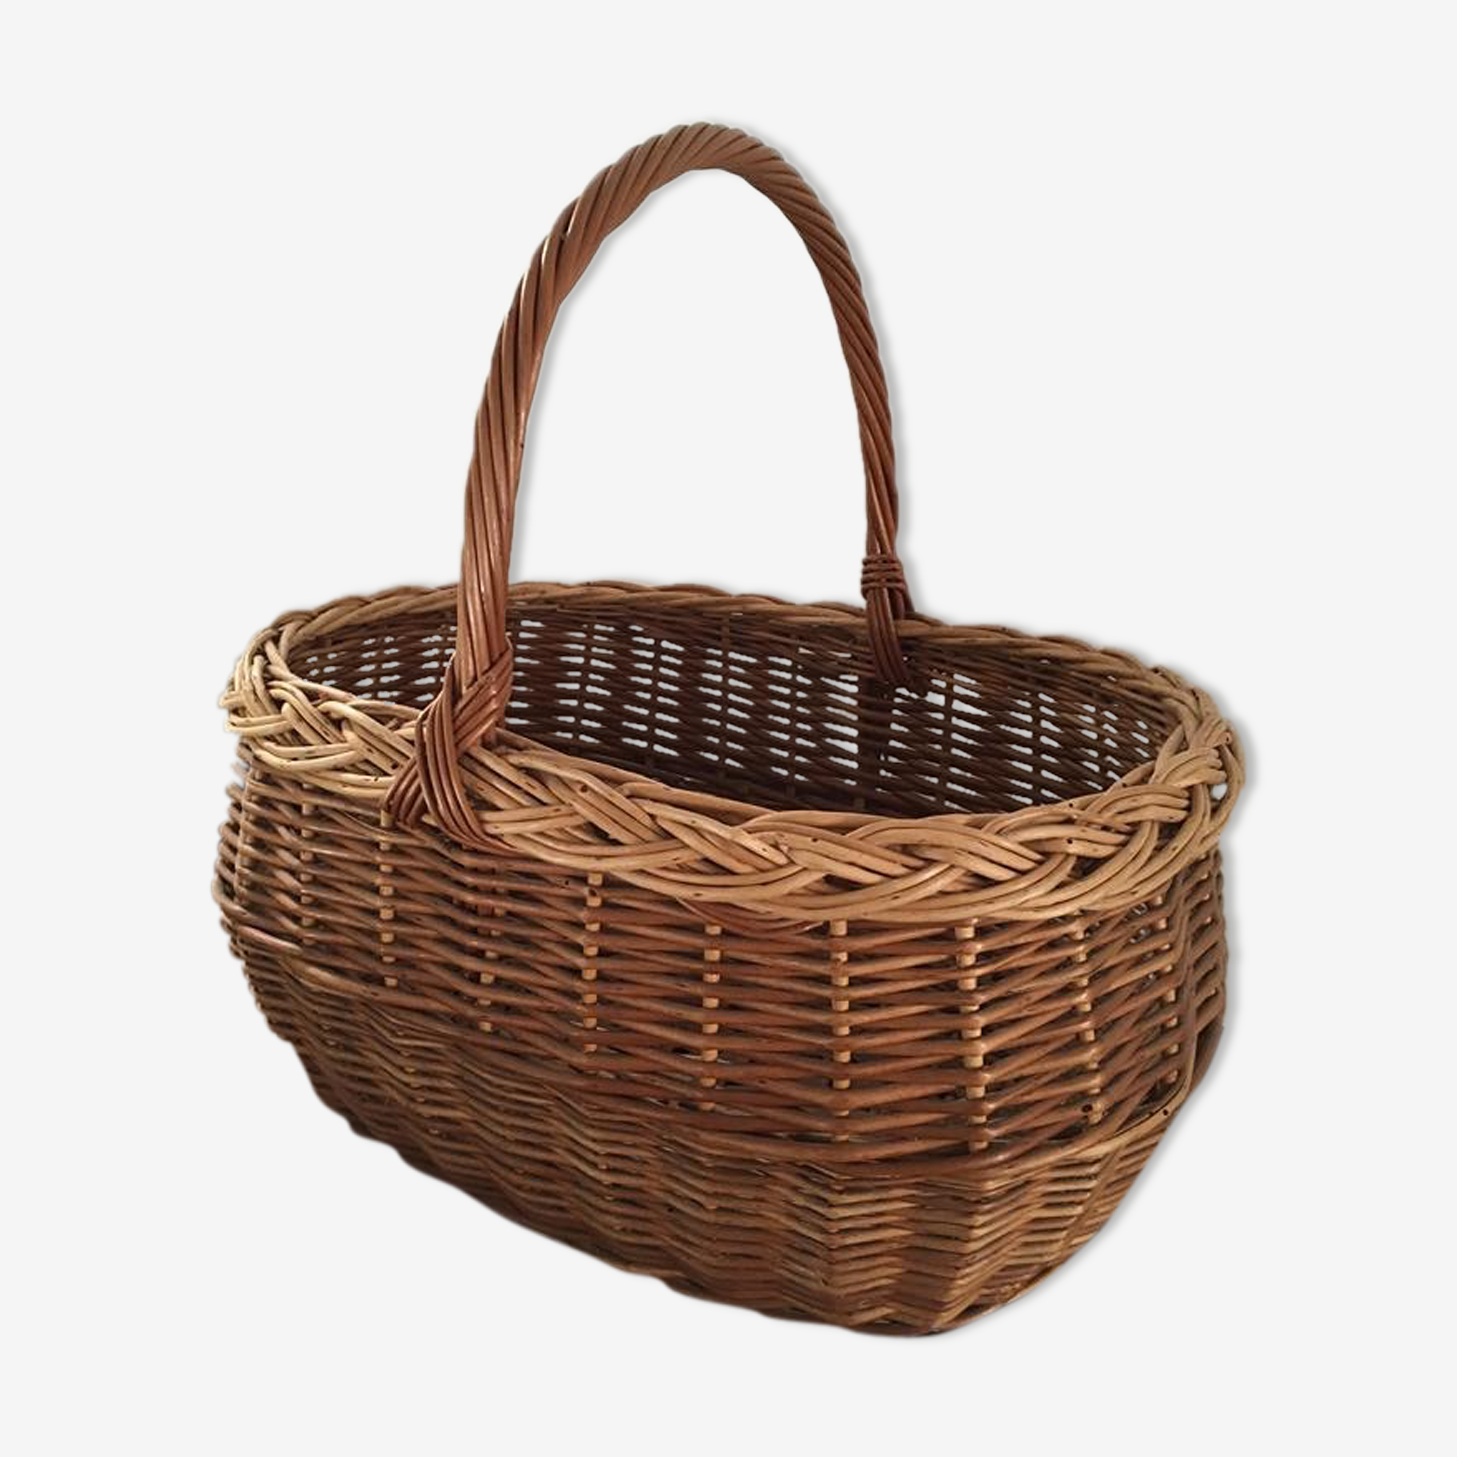 Two-tone braided wicker basket